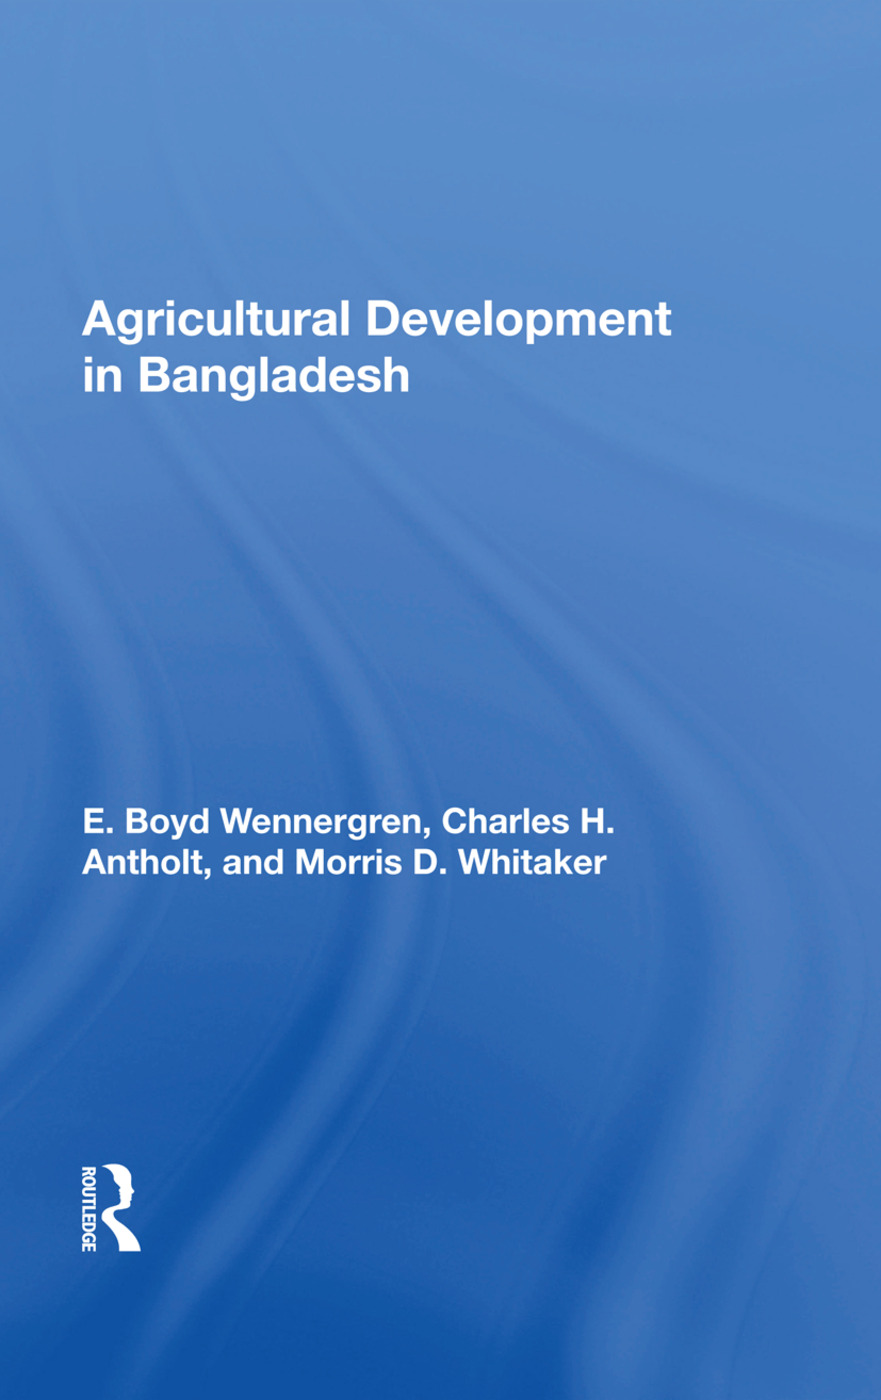 Agricultural Development In Bangladesh: Prospects For The Future book cover